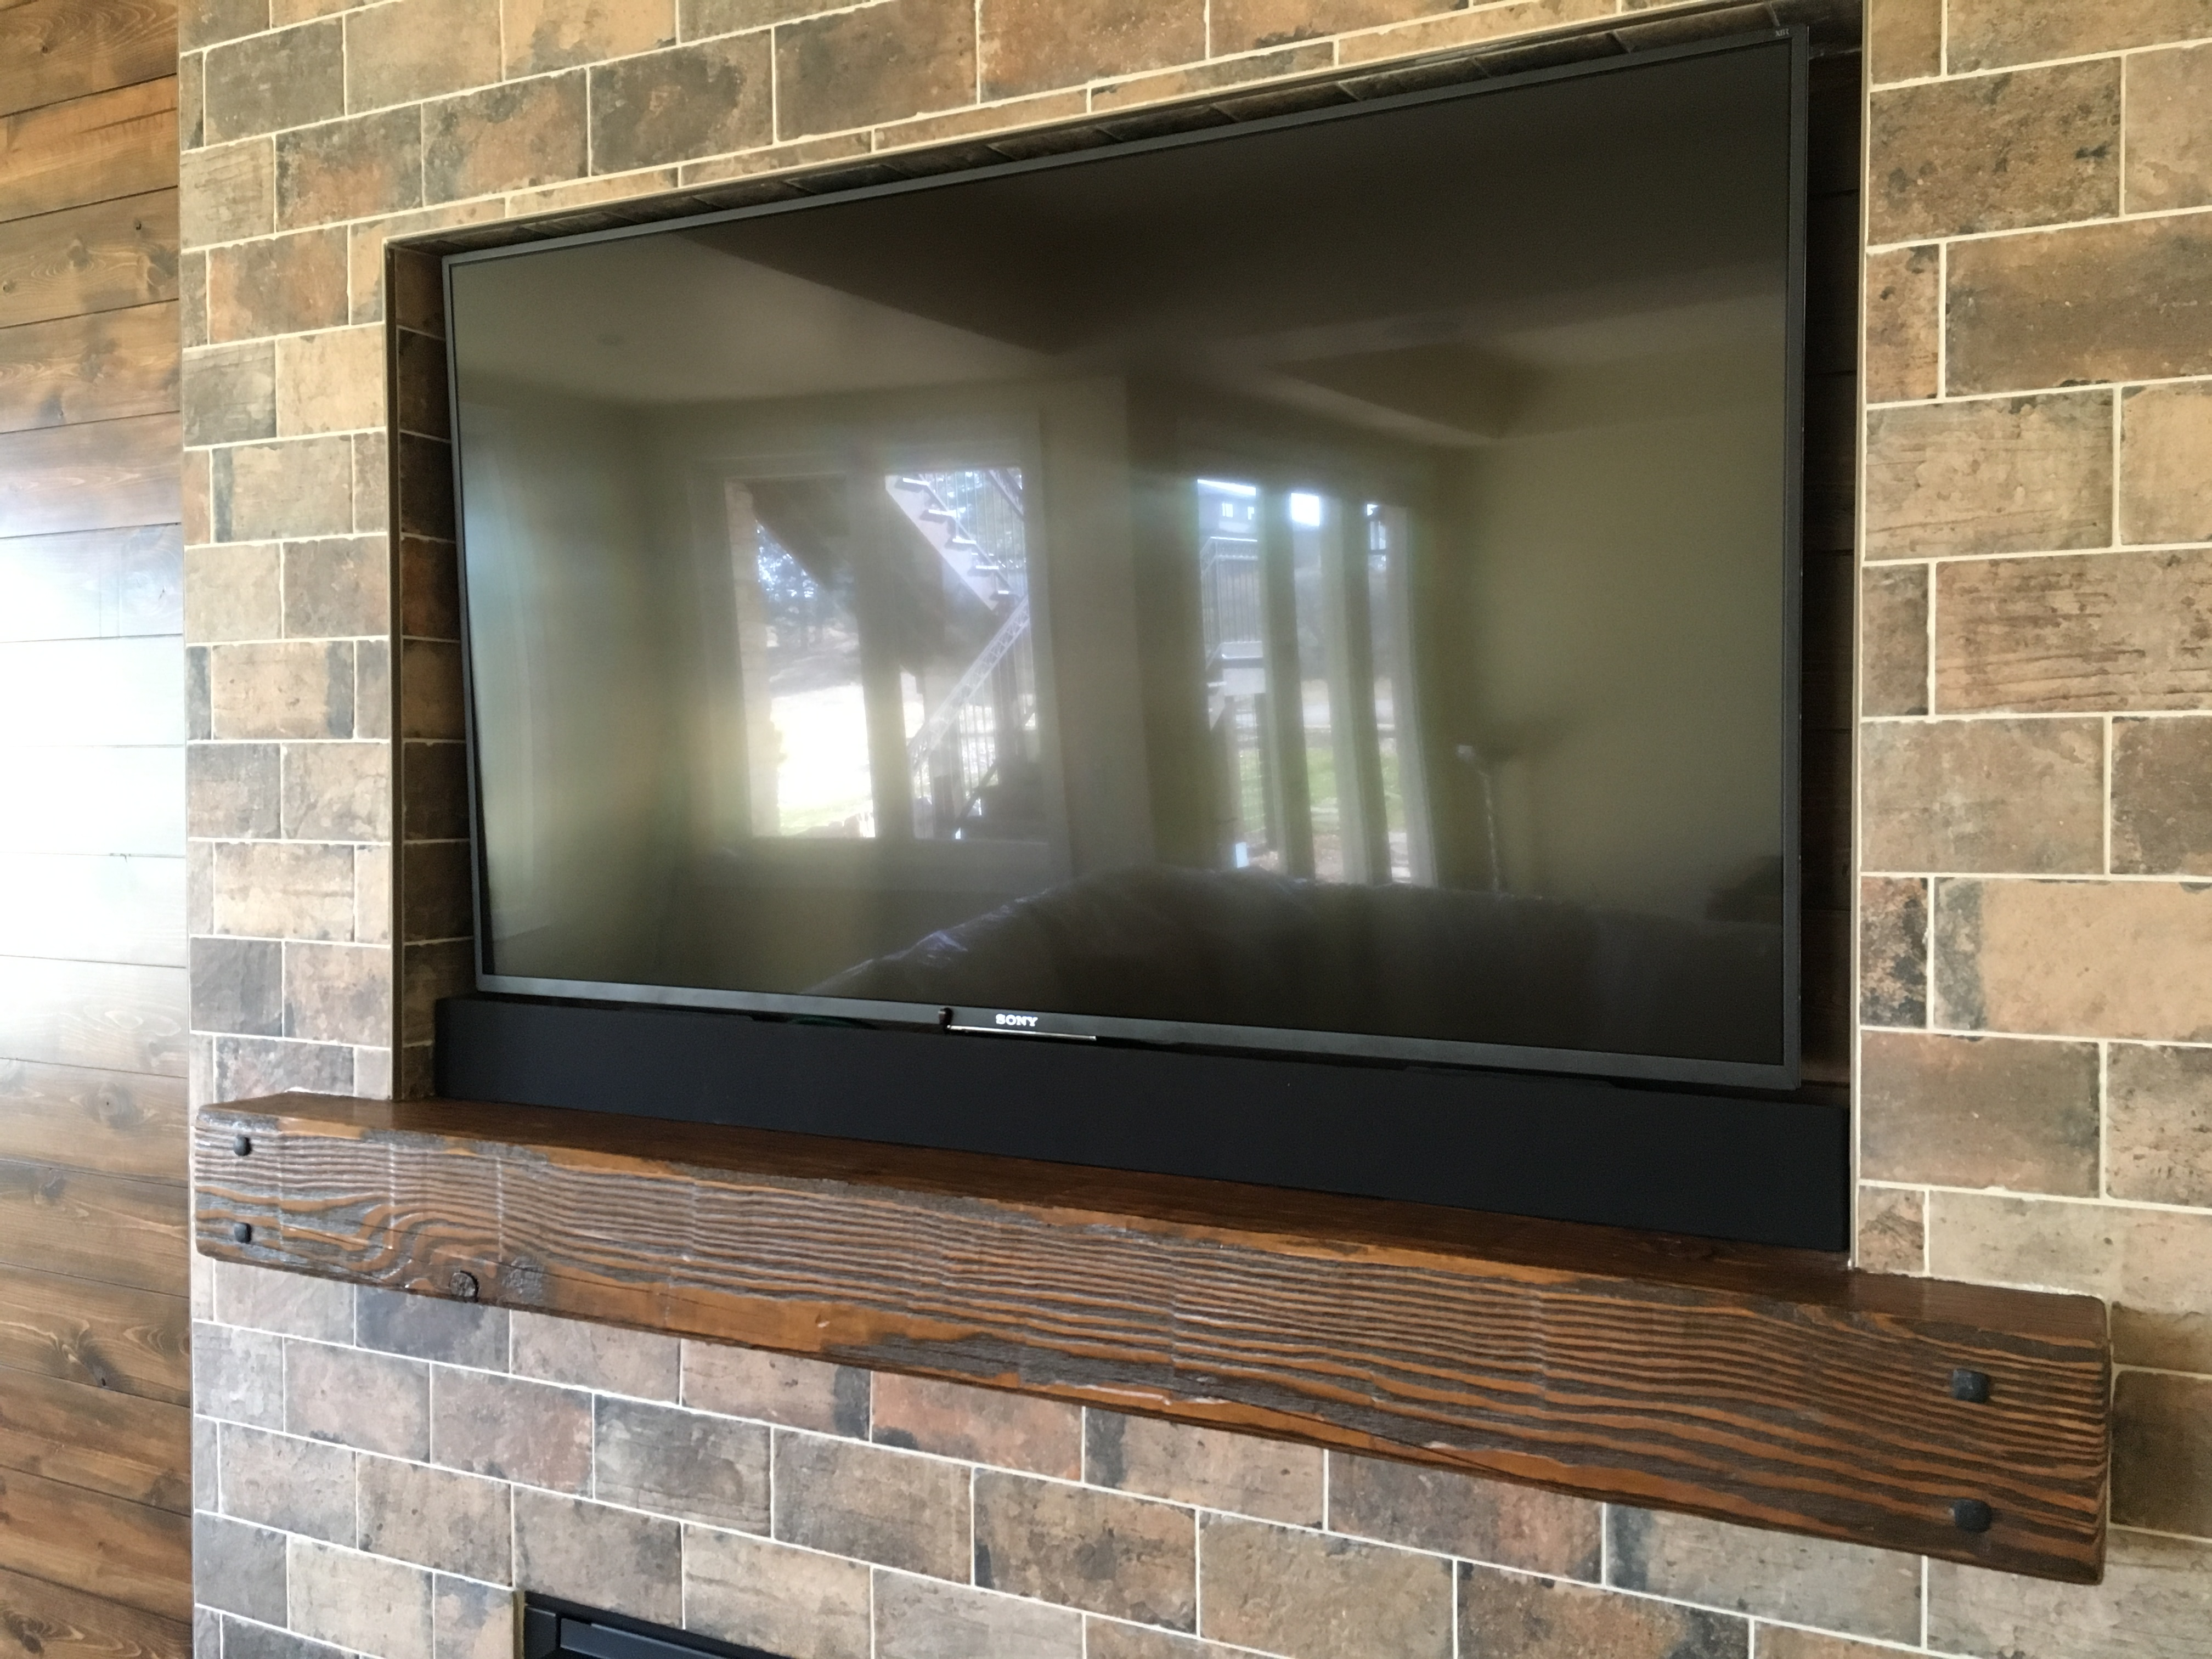 Inset TV with Speaker Bar